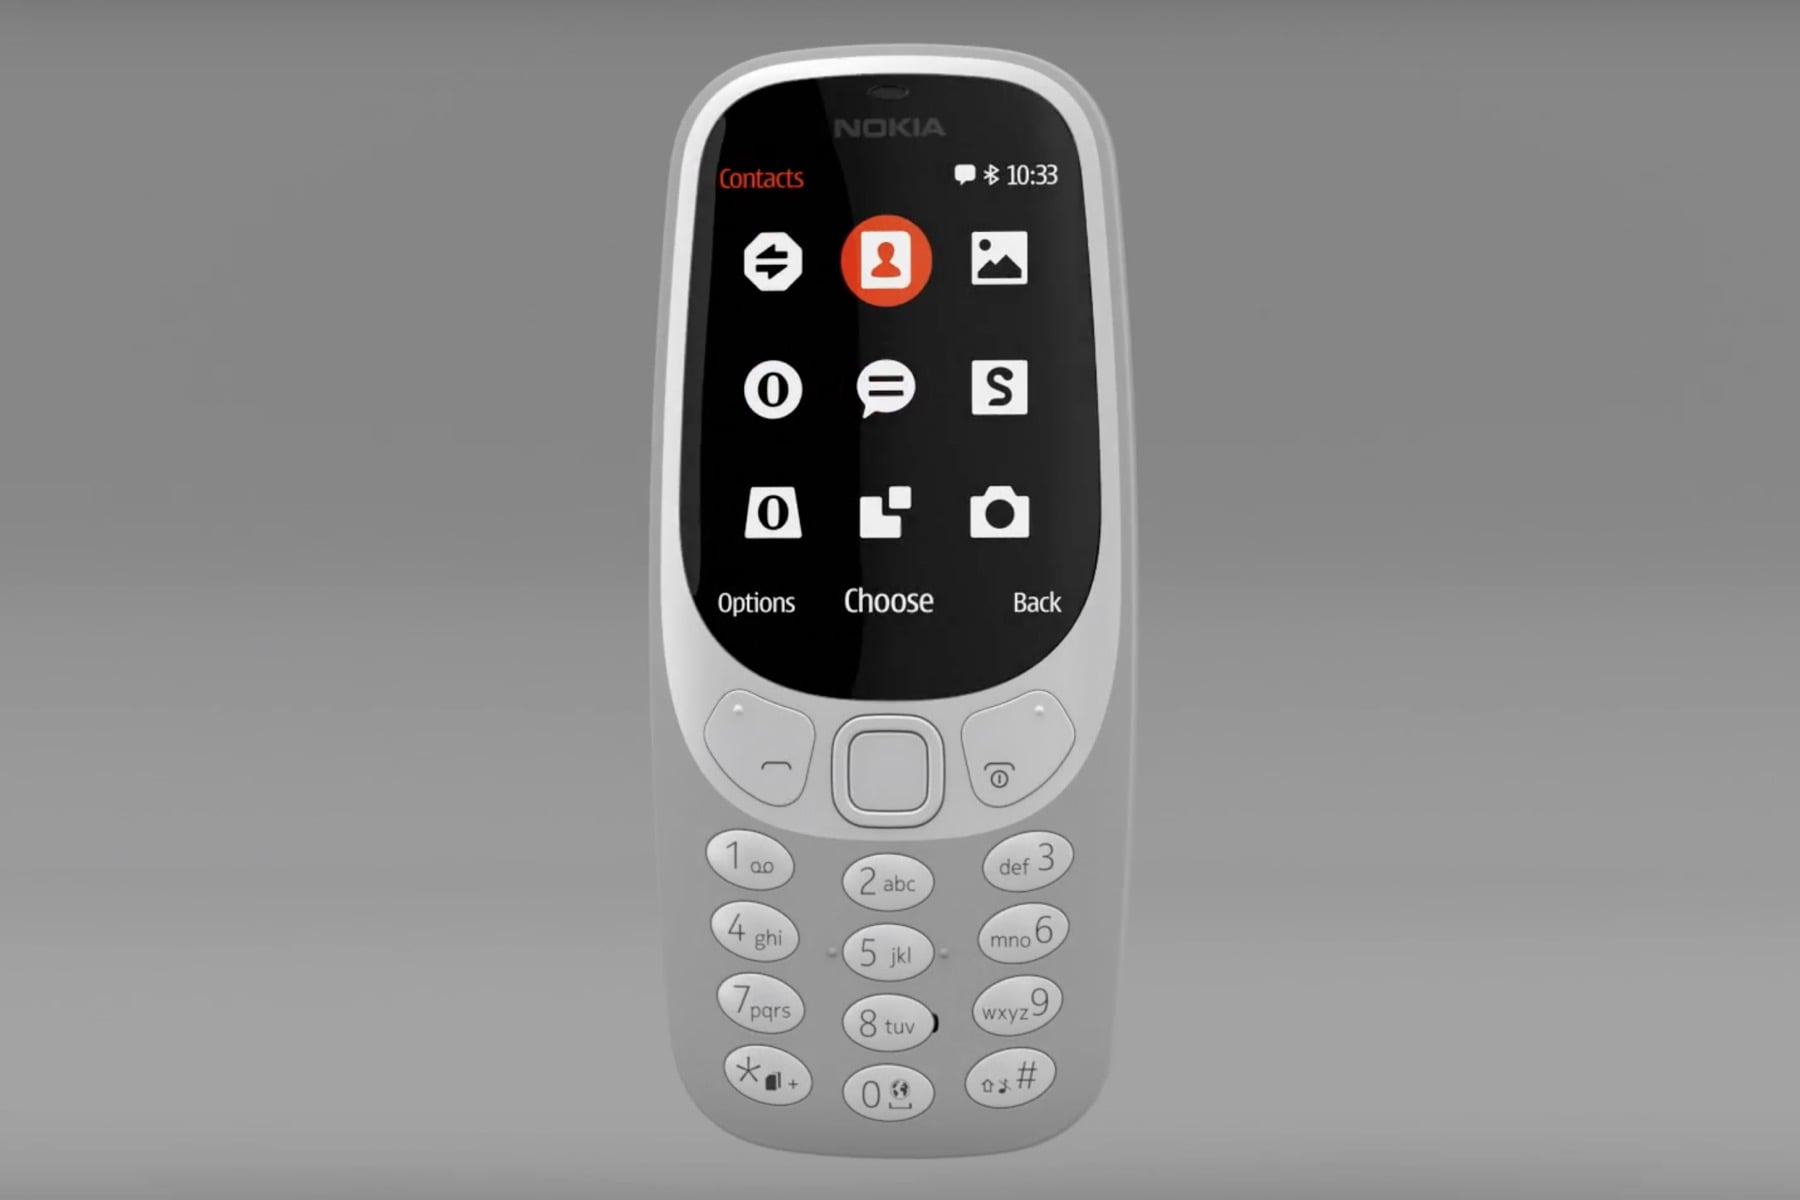 Nokia 3310 Russia Buy Shop review 2